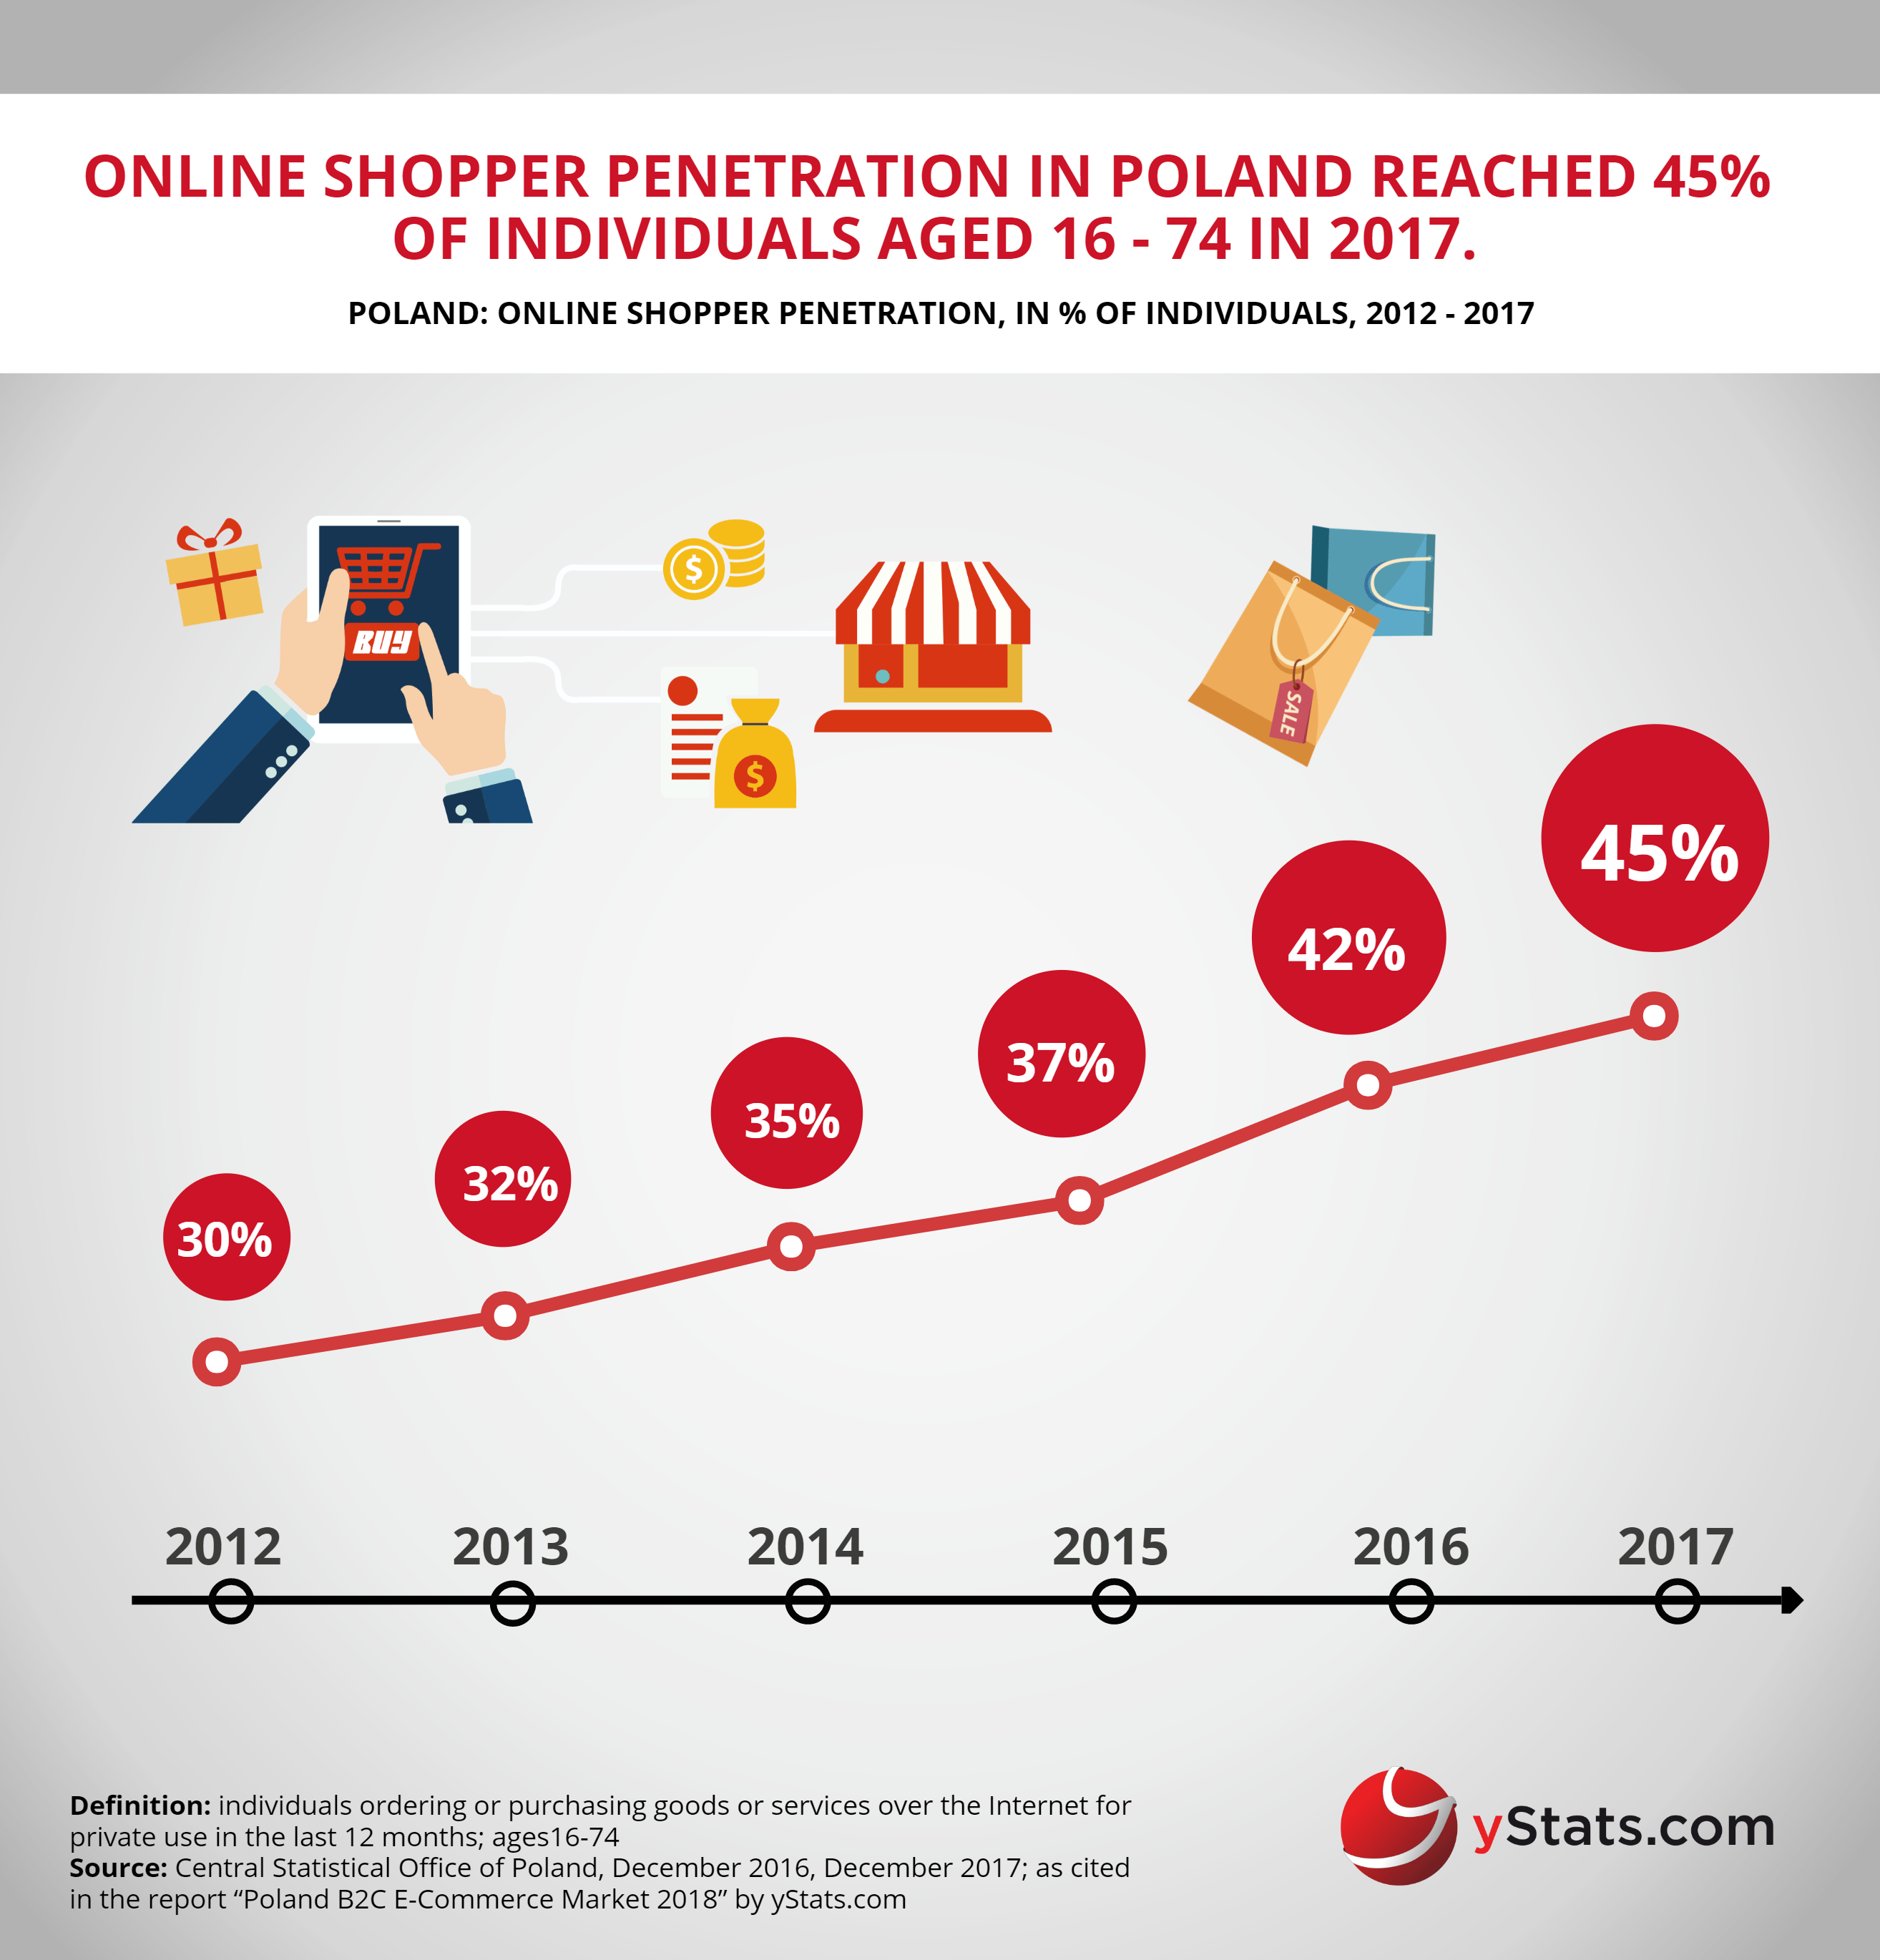 online shopper penetration in poland